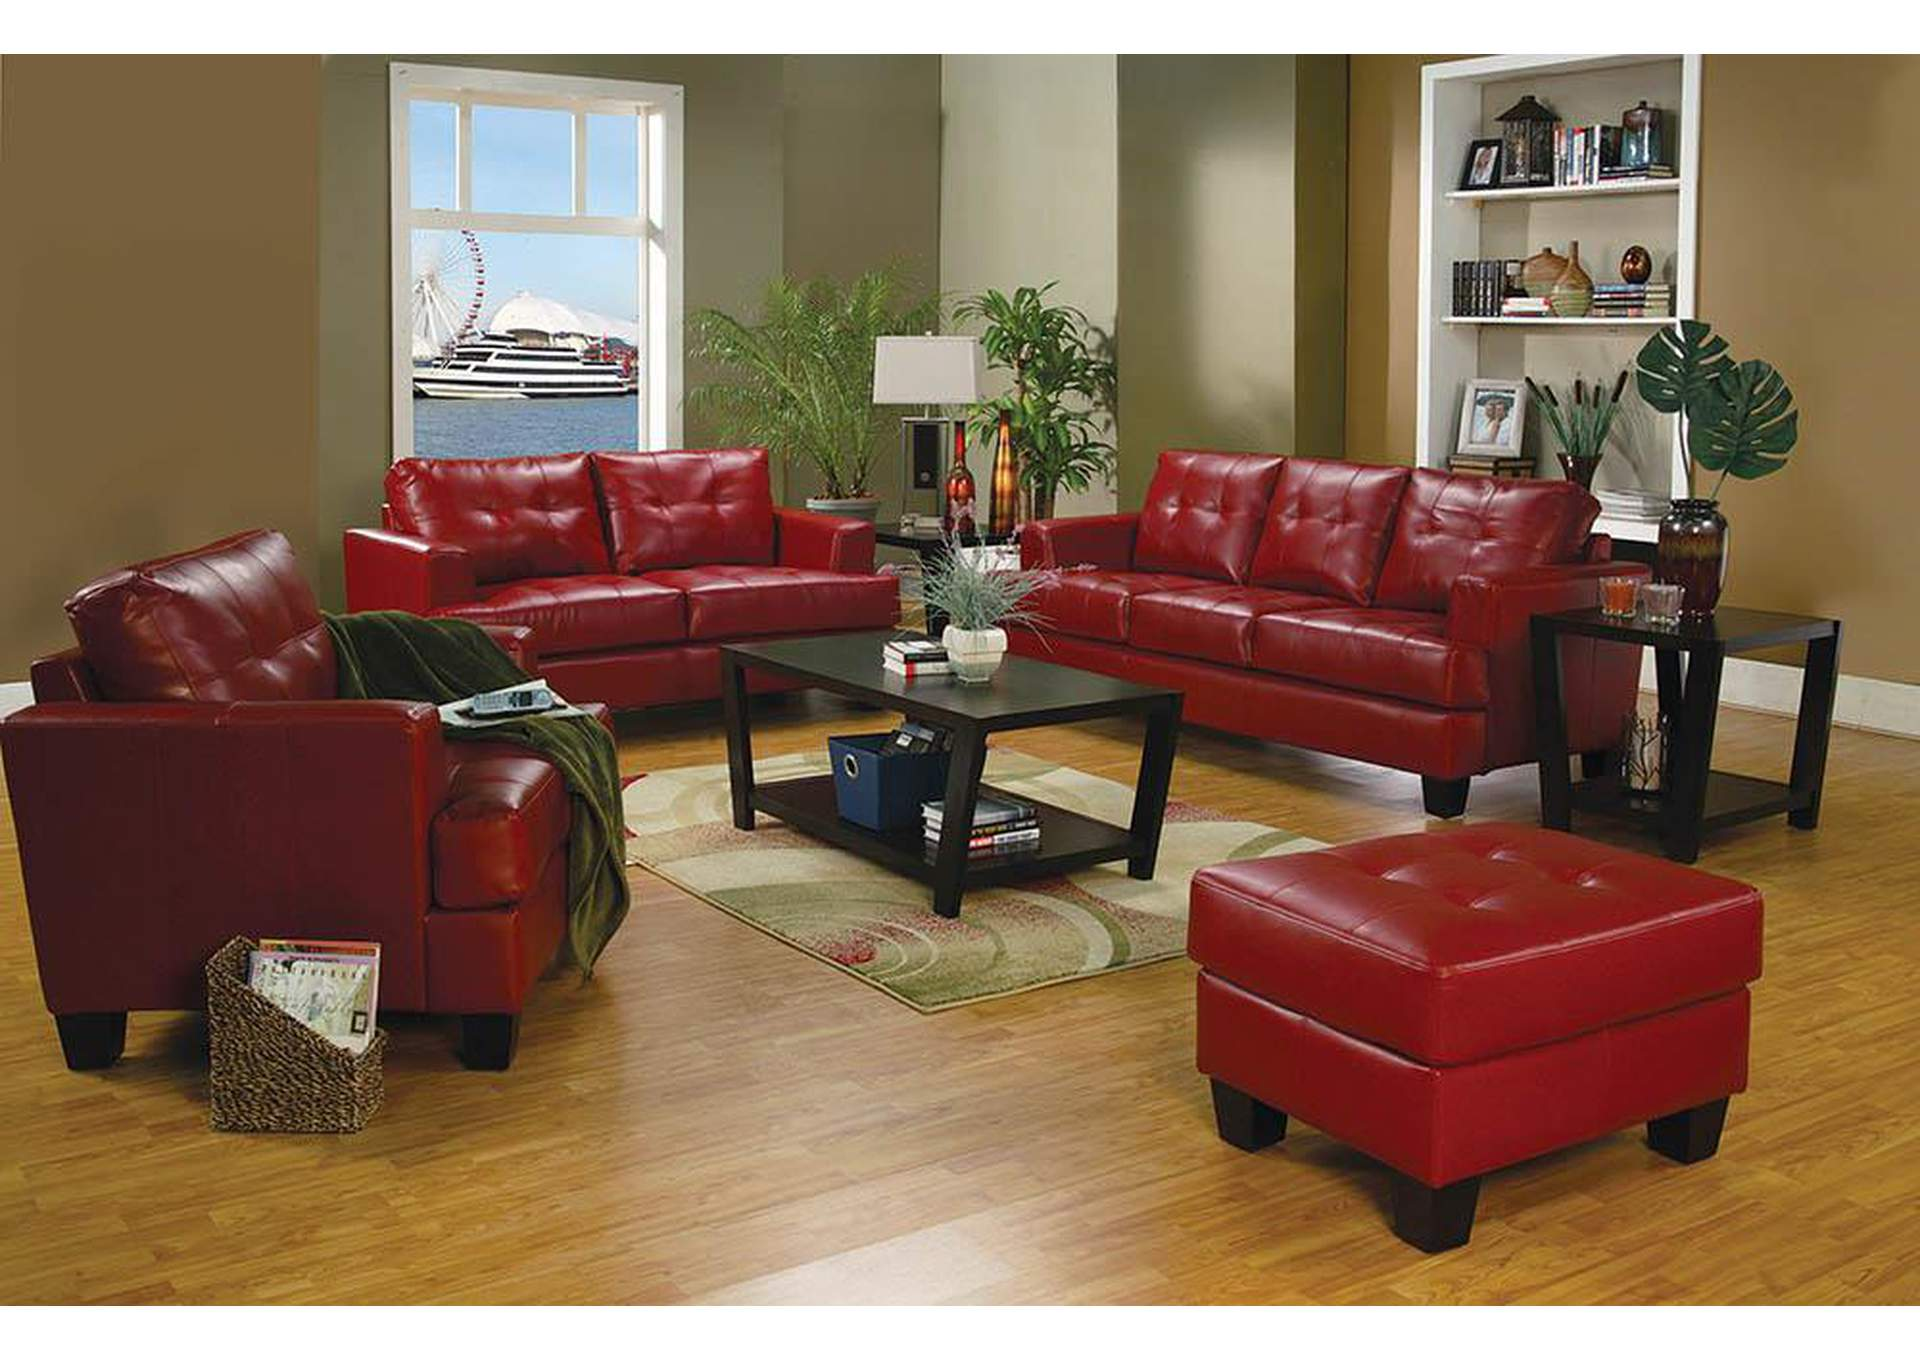 Samuel Red Bonded Leather Love Seat,ABF Coaster Furniture